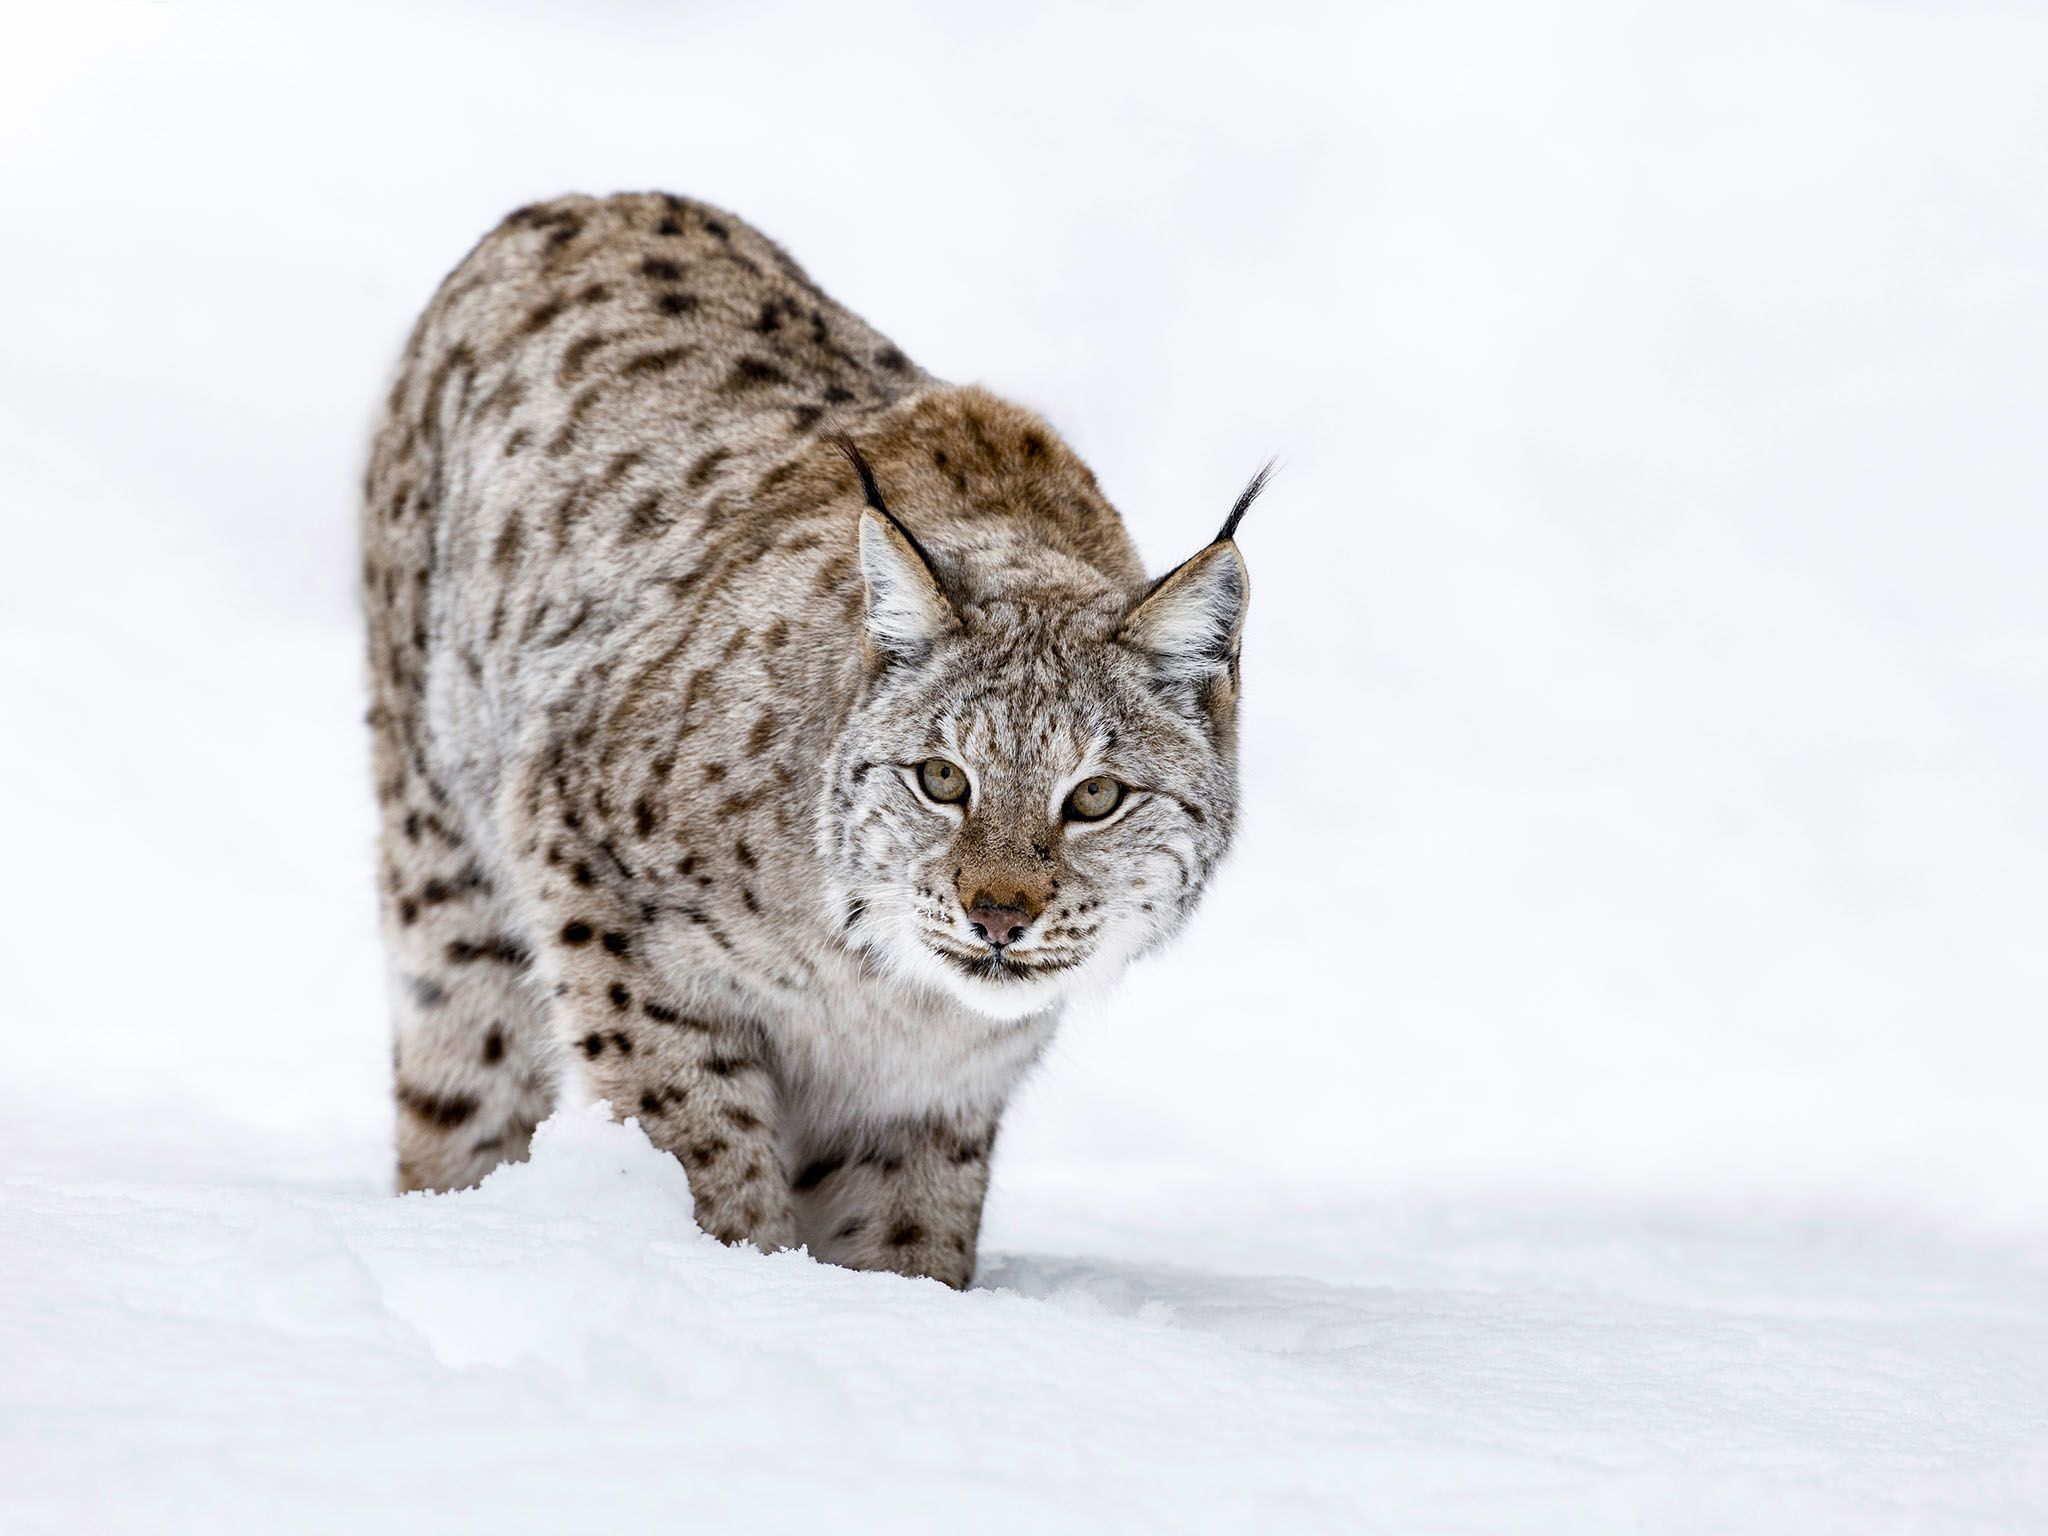 A Lynx in winter snow. This image is from Winter Wonderland. [Photo of the day - دسامبر 2015]